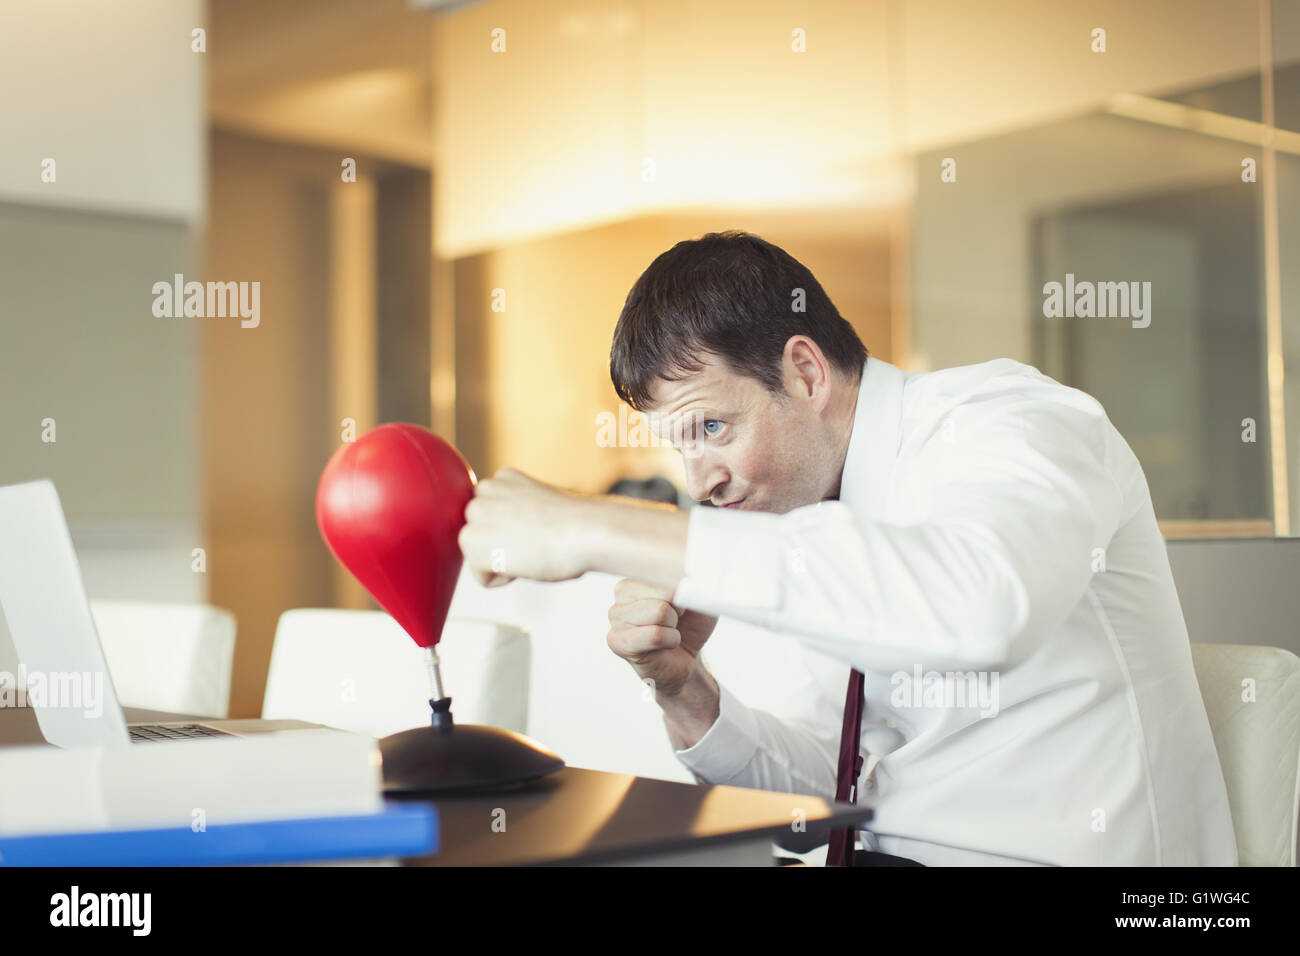 Businessman Punching Toy Punching Bag In Office